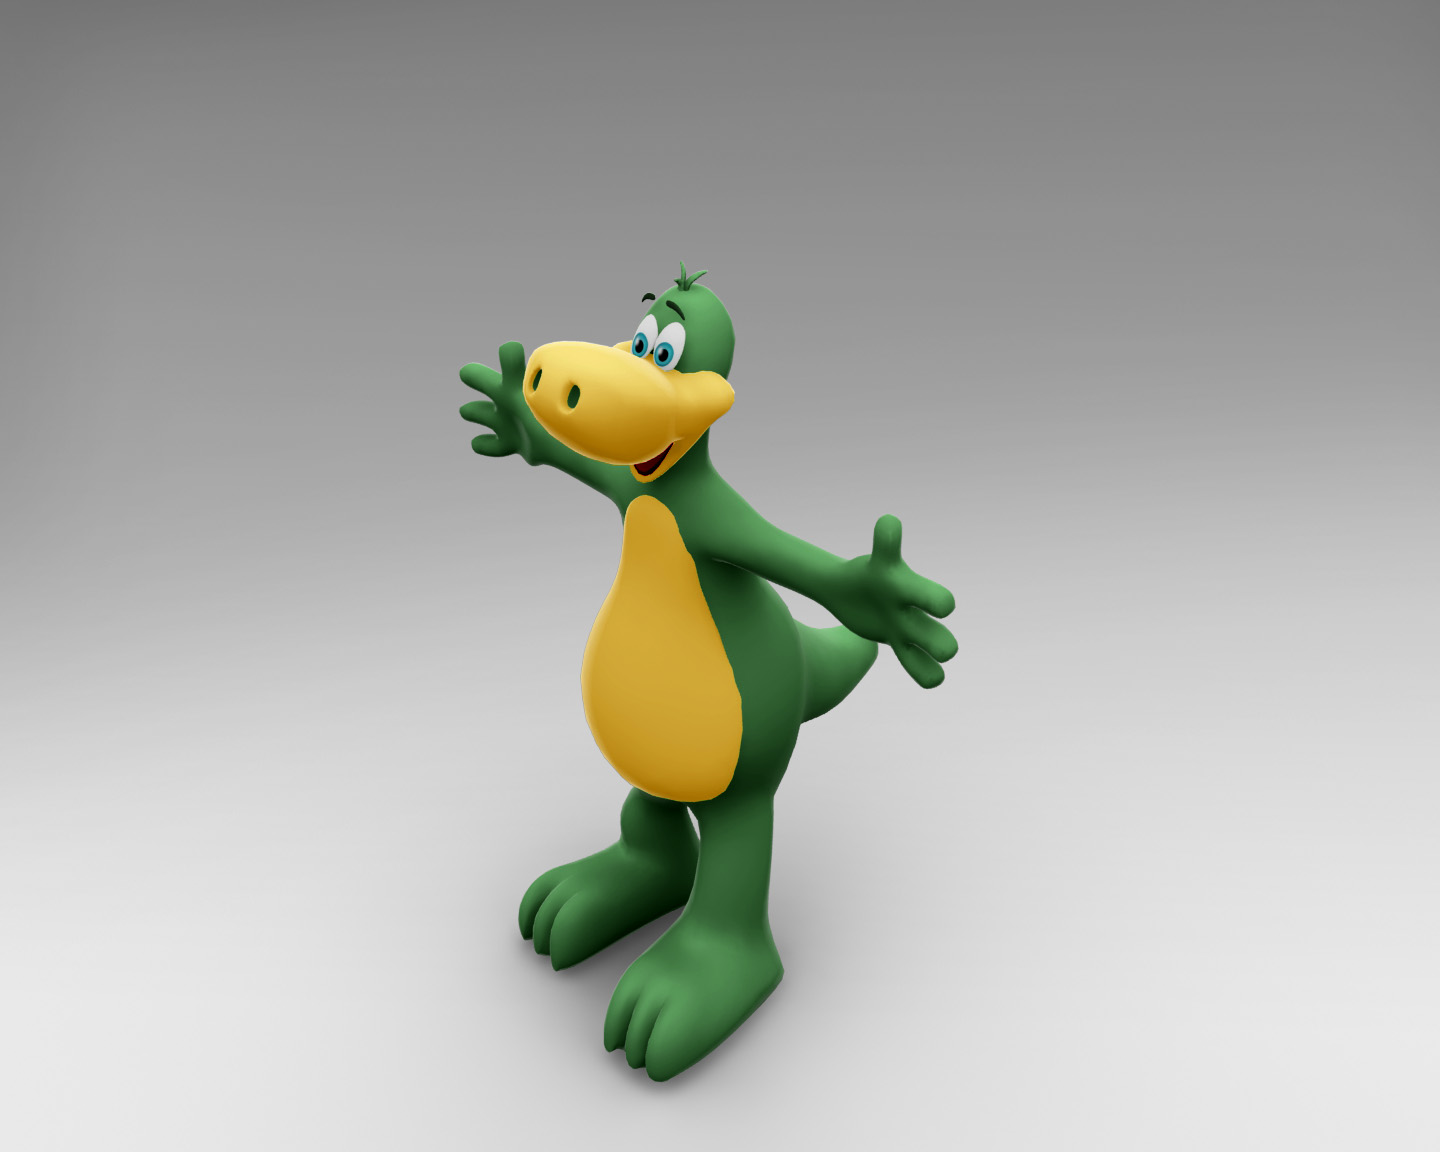 3 Cartoon Character Images : Dinosaur cartoon character d model rigged max obj ds fbx